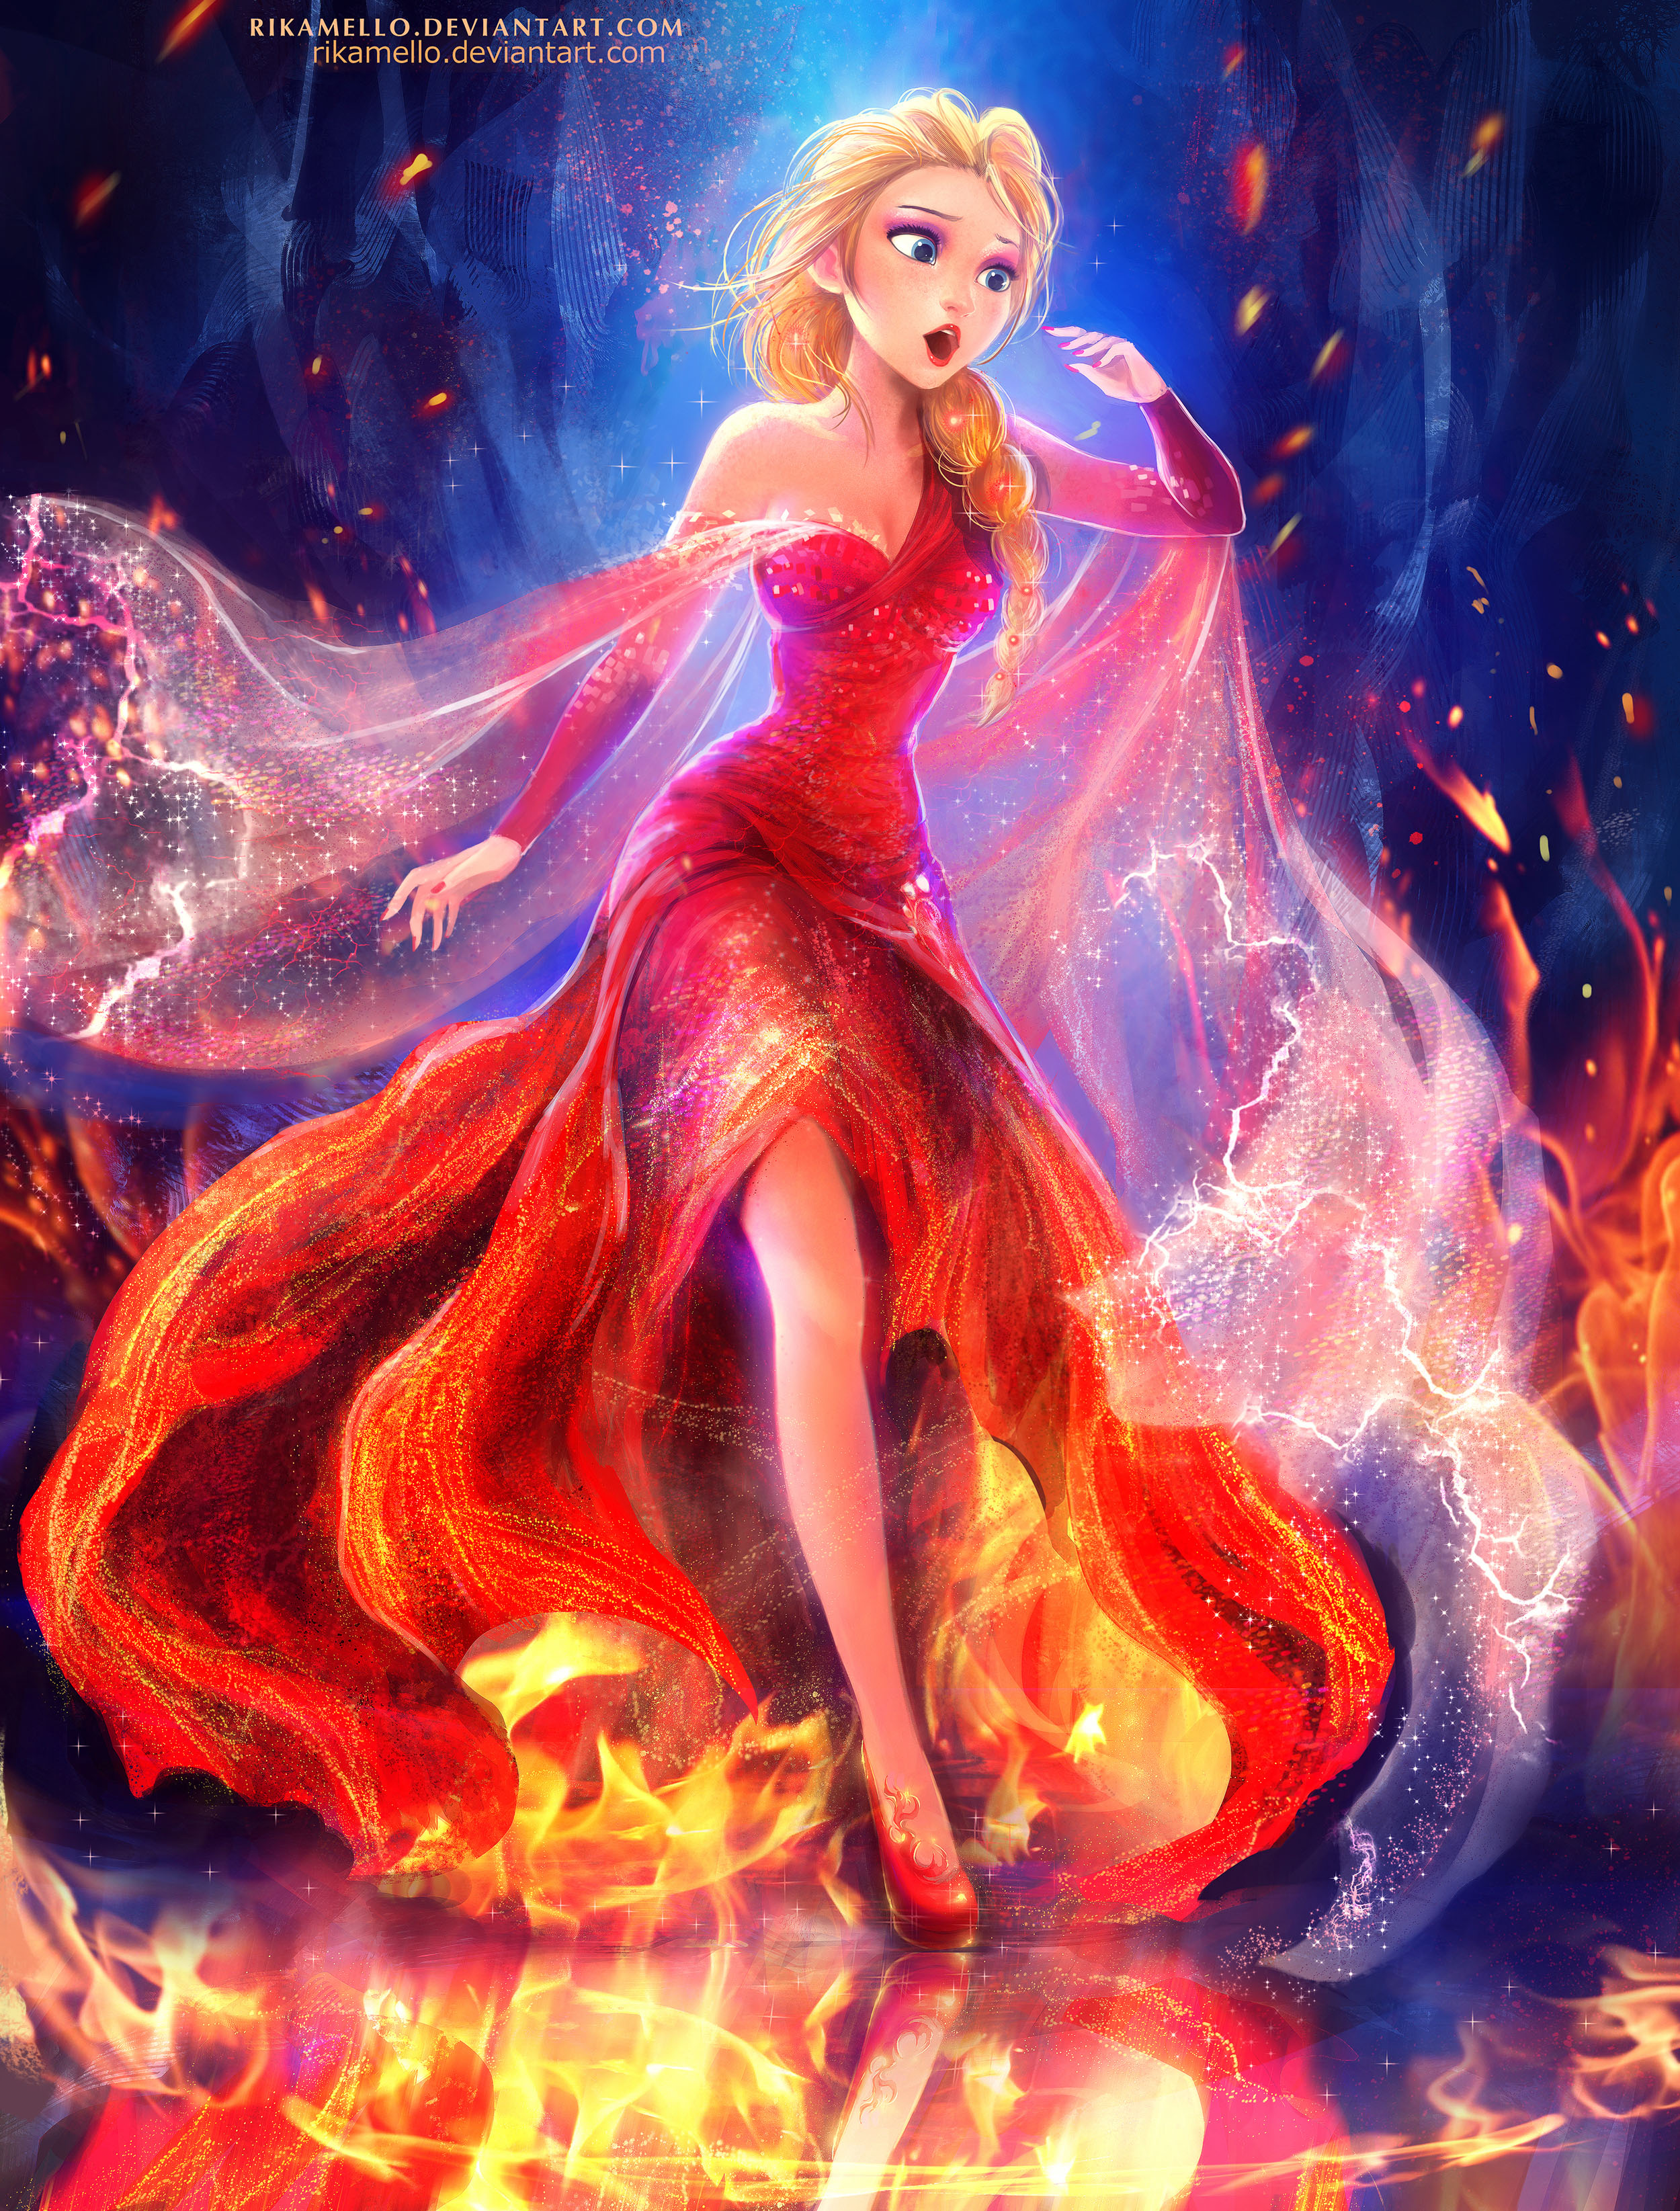 Queen Tv Movie Elsa The Queen On Fire By Rikamello Duiu